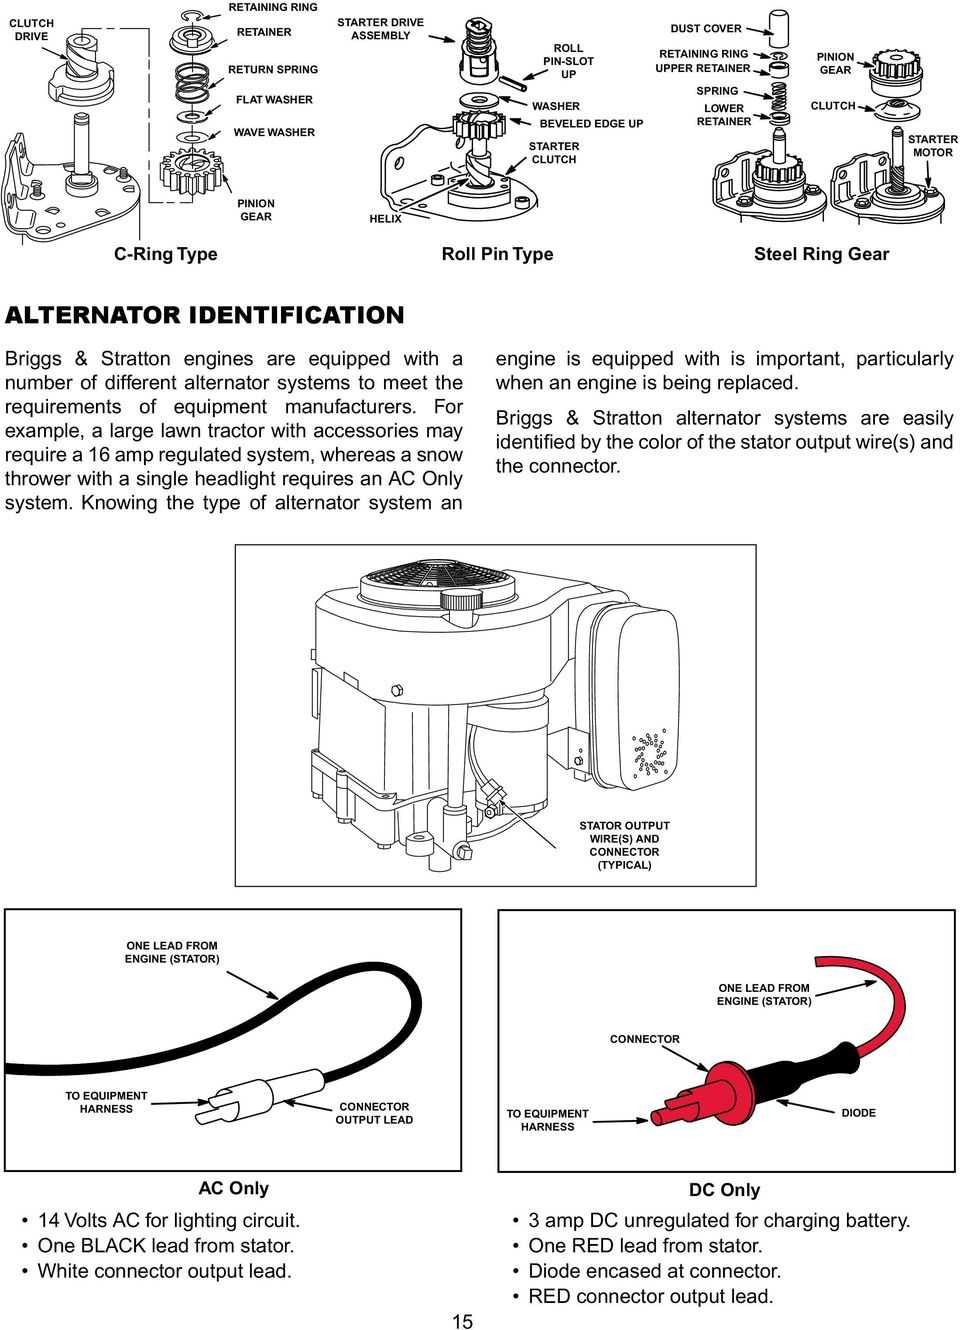 Engine Alternator Repower Guide Pdf 10 0 Briggs Stratton Motor Wiring Diagram Different Systems To Meet The Requirements Of Equipment Manufacturers